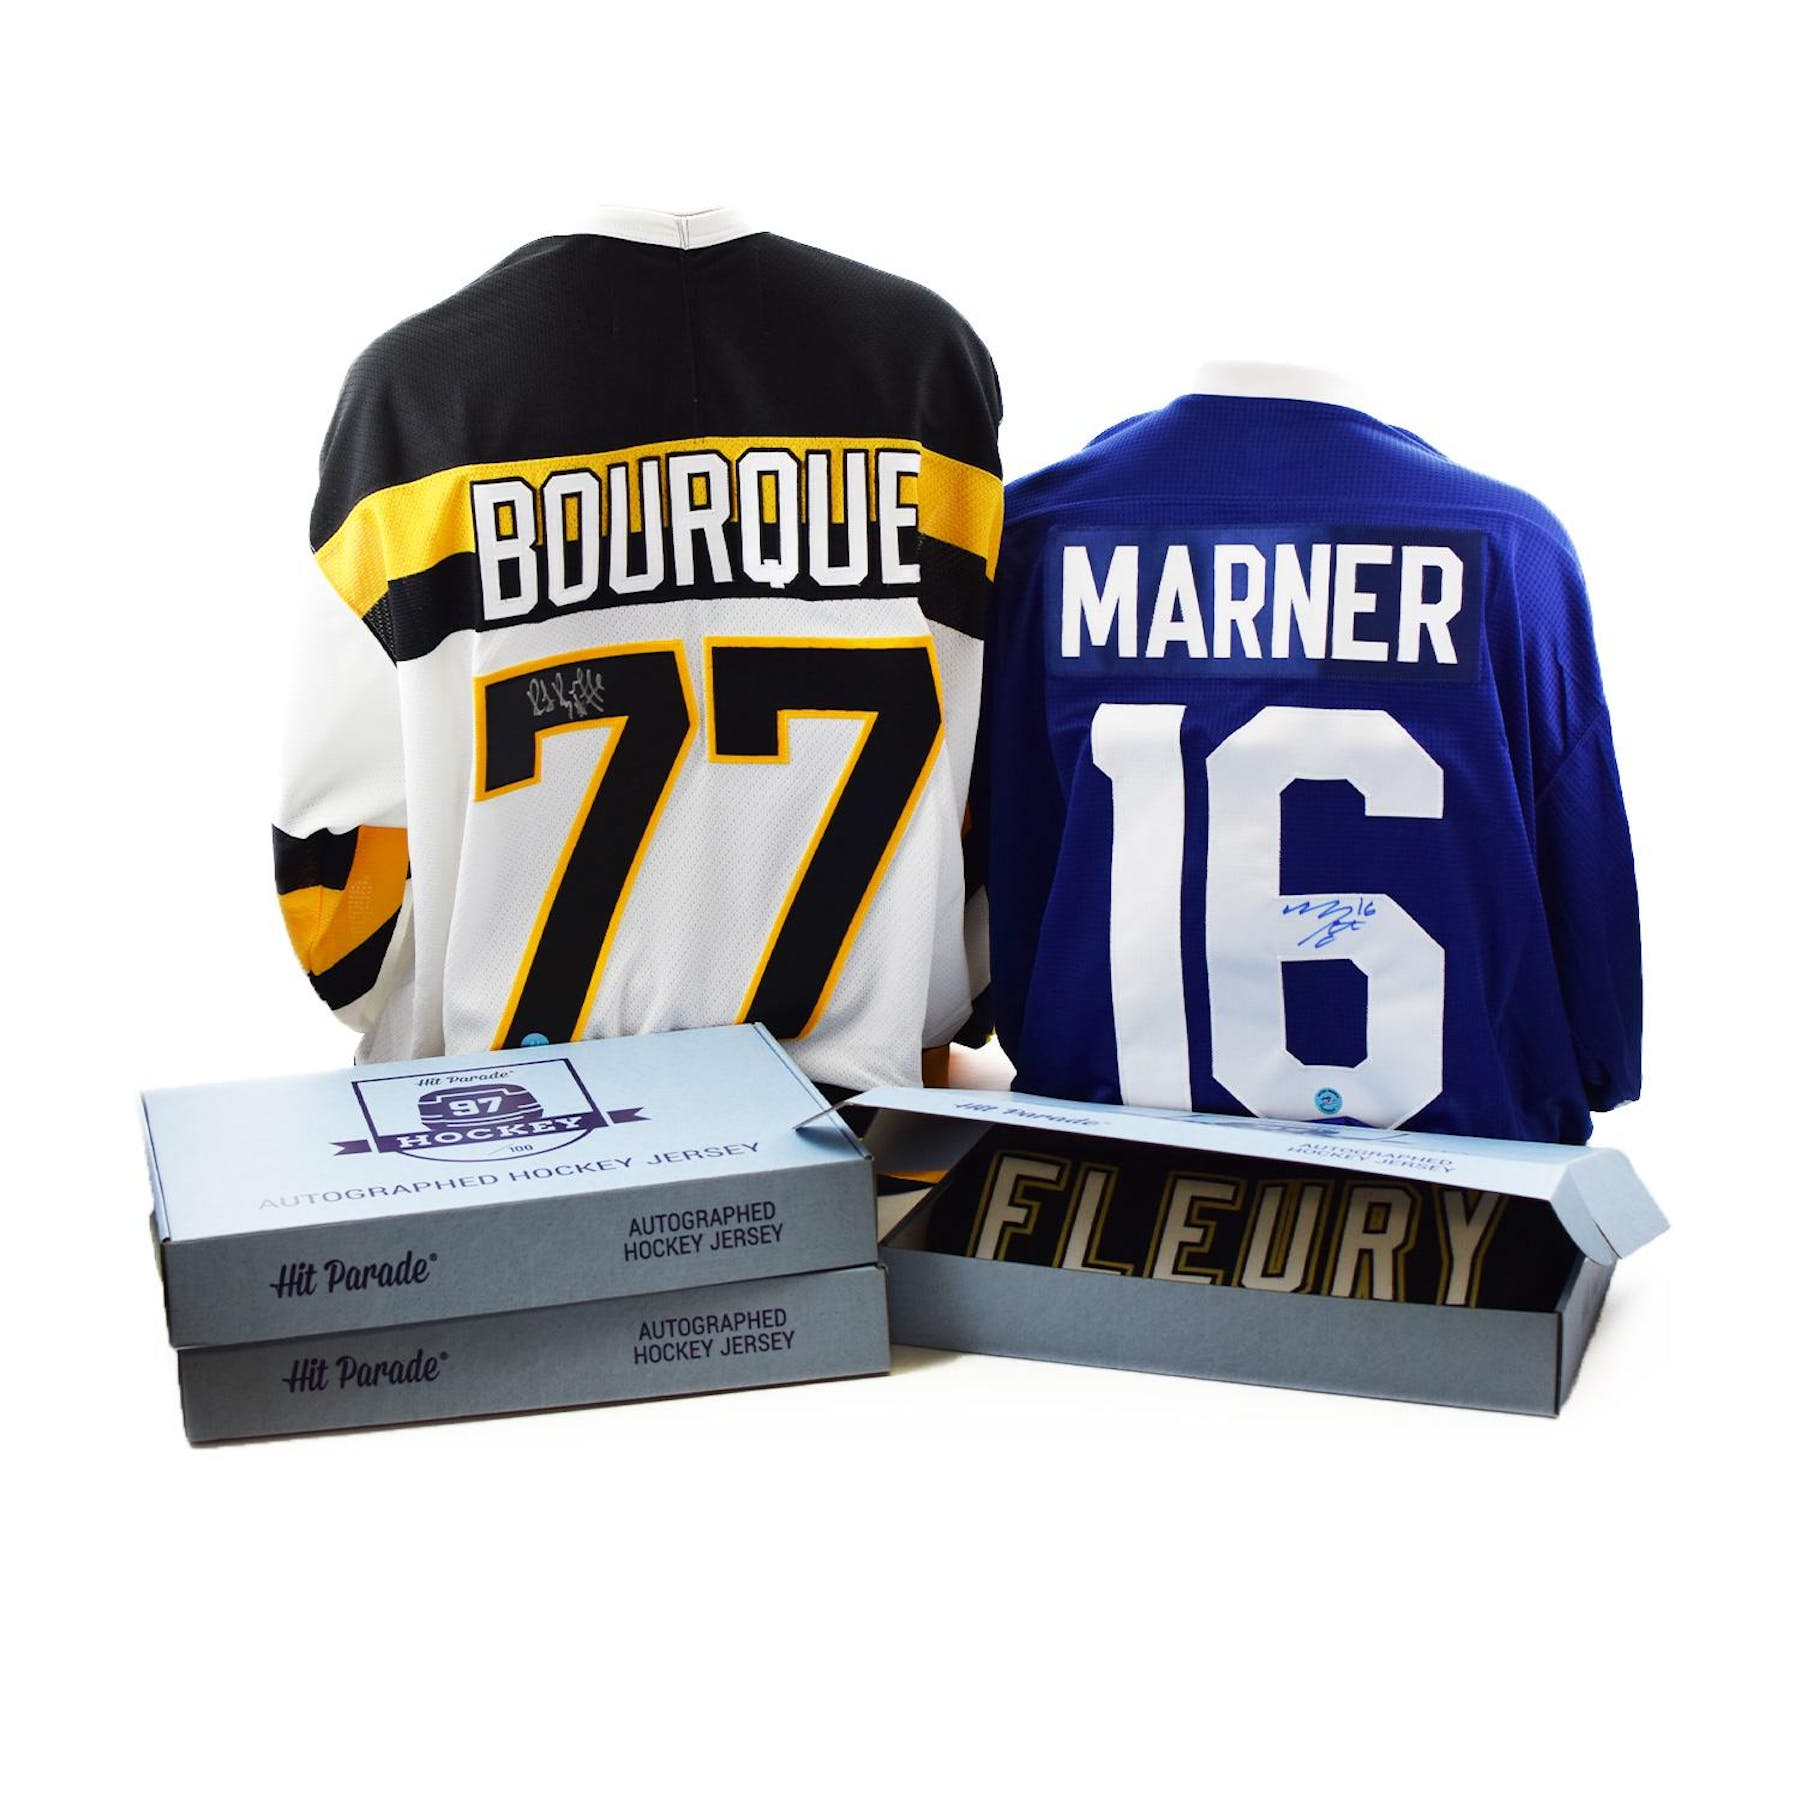 low priced 39b89 7265a 2018/19 Hit Parade Autographed Hockey Jersey Hobby Box - Series 5 - Mario  Lemieux & Mitch Marner!!